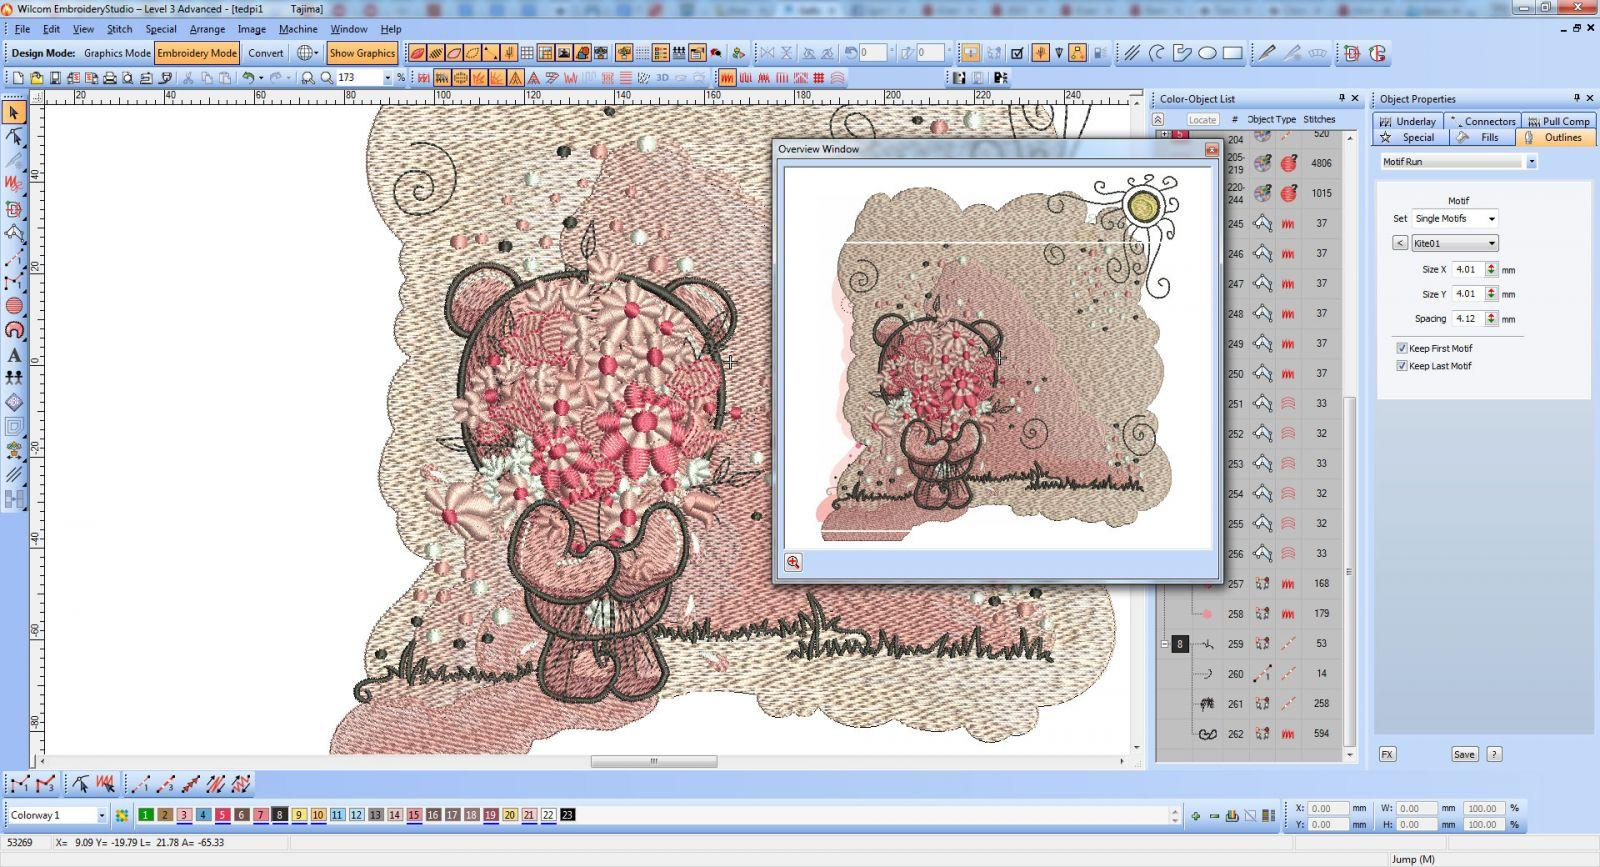 Teddy with pink flower - Wilcom screen shot